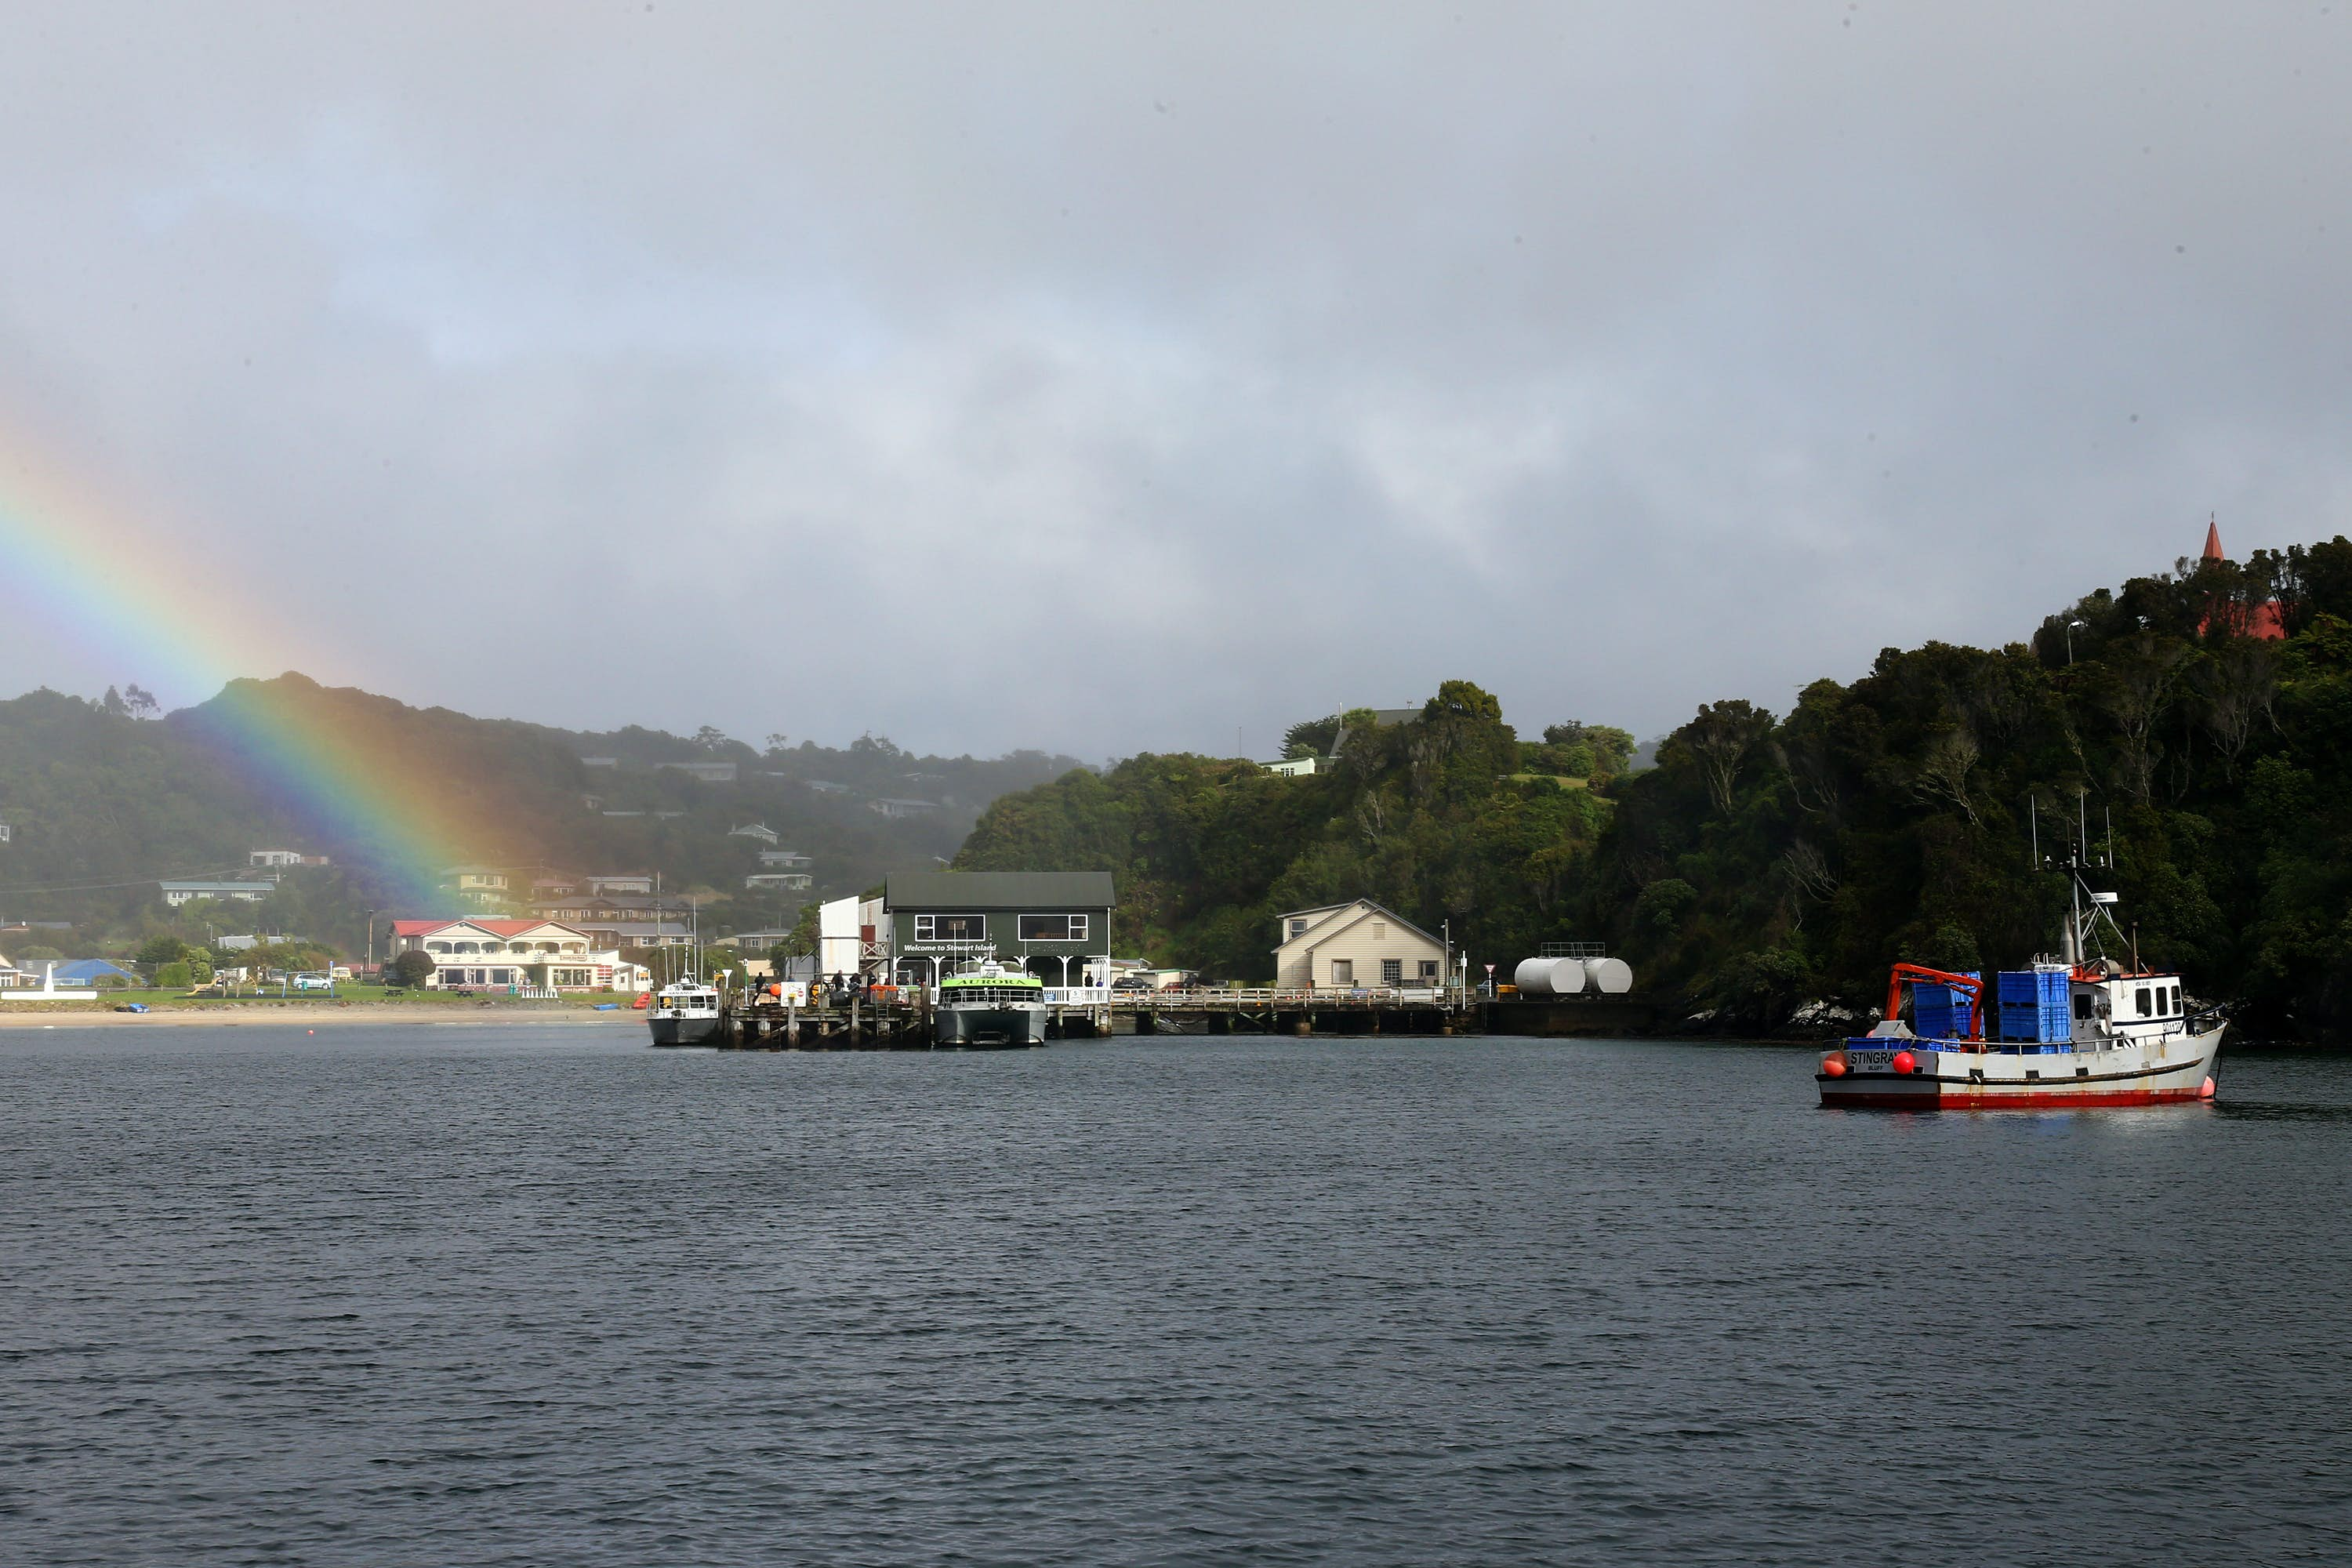 A white and red fishing boat pulls into the harbor near Oban, New Zealand on the right side of the frame as a rainbow illuminates the white buildings and dock on the right side of the frame. The ocean is a deep slate blue and the sky is a light grey. The green forested hillsides along the shore are dotted with small white structures and red peaked roofs